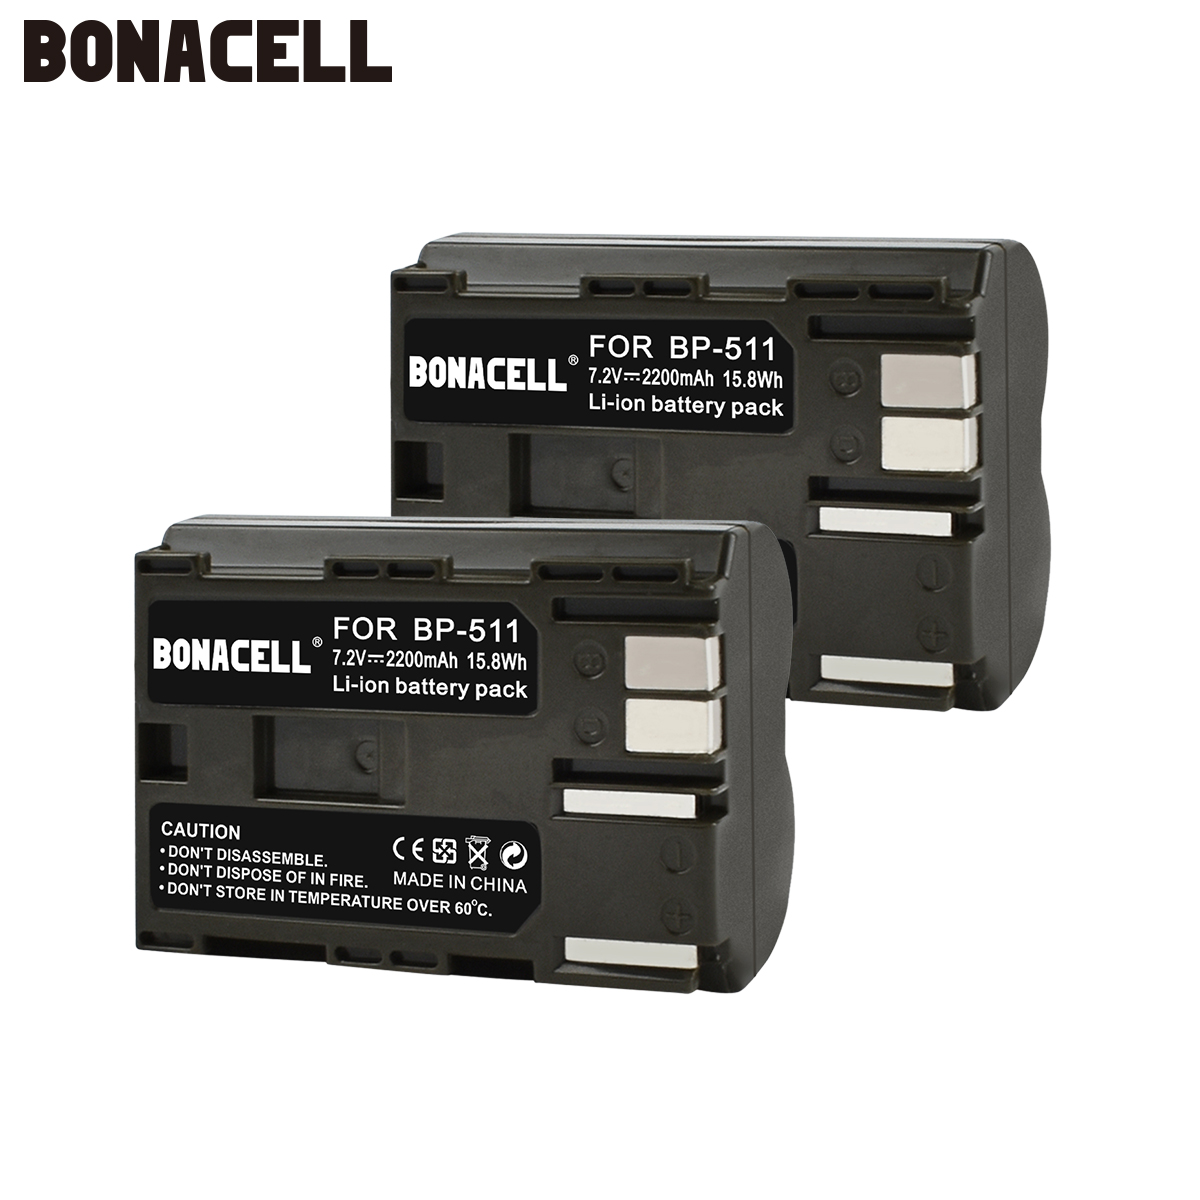 Bonacell 2200mAh BP-511 BP-511A BP 511A for Camera Battery BP511 BP 511 For Canon EOS 40D 300D 5D 20D 30D 50D 10D G6 L50